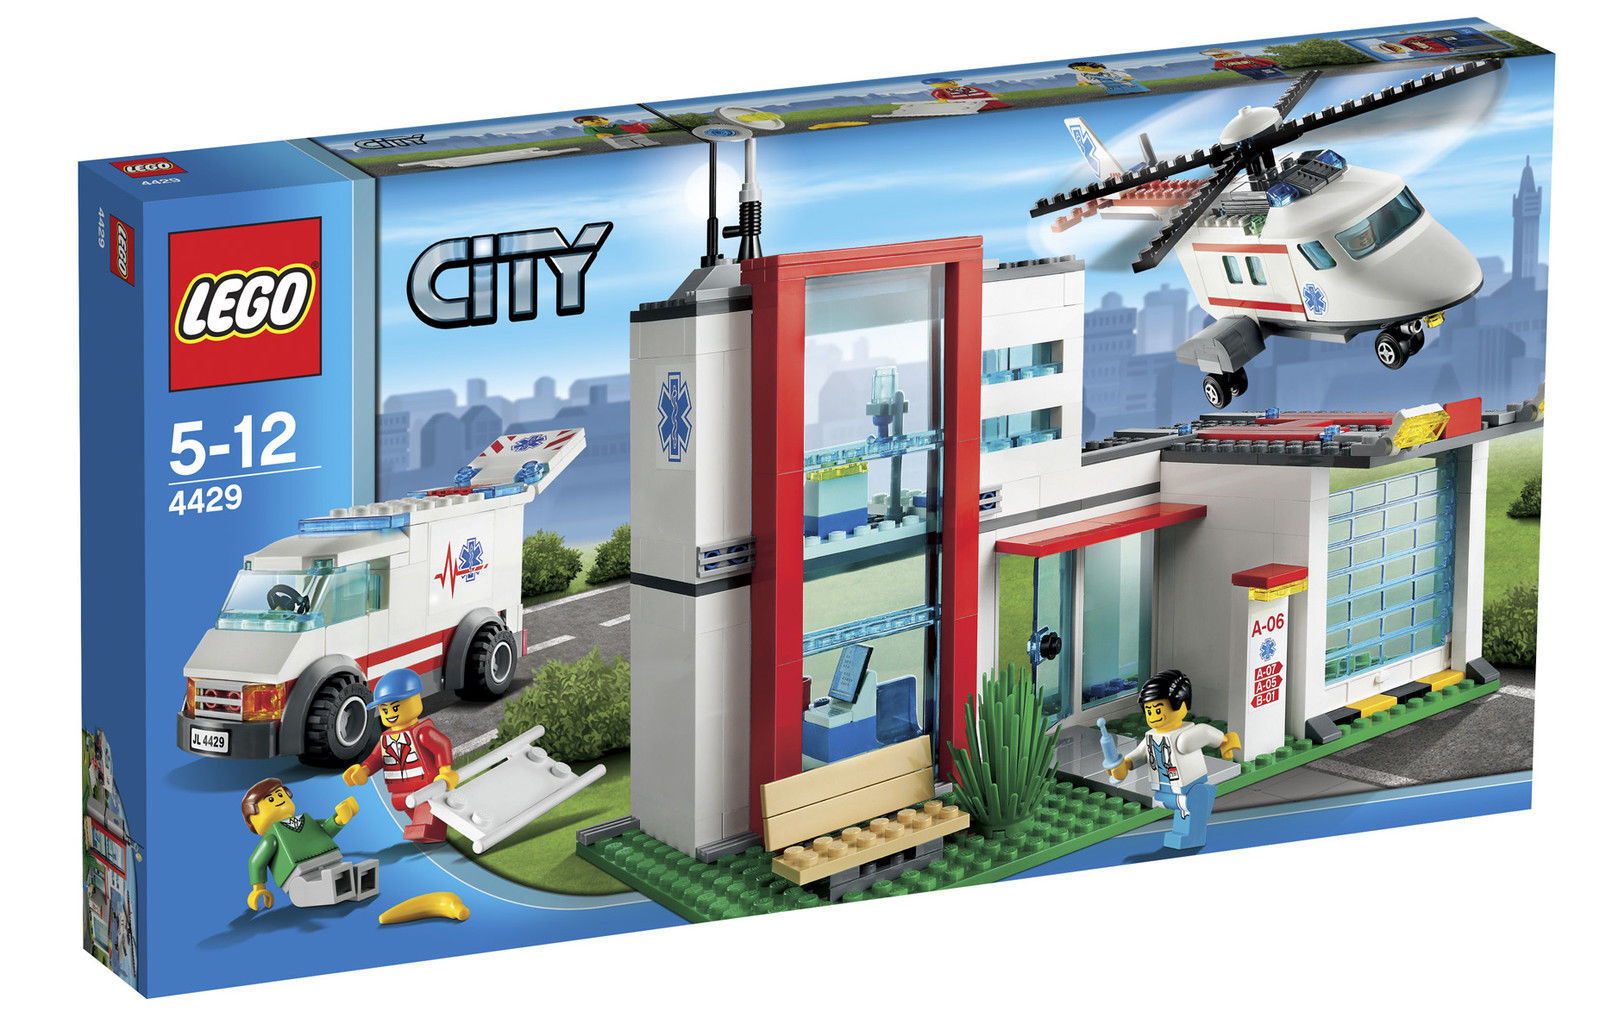 LEGO® City 4429 Helikopter Helikopter Helikopter Rettungsbasis NEW_Helicopter Rescue NEW MISB NRFB 4594d6